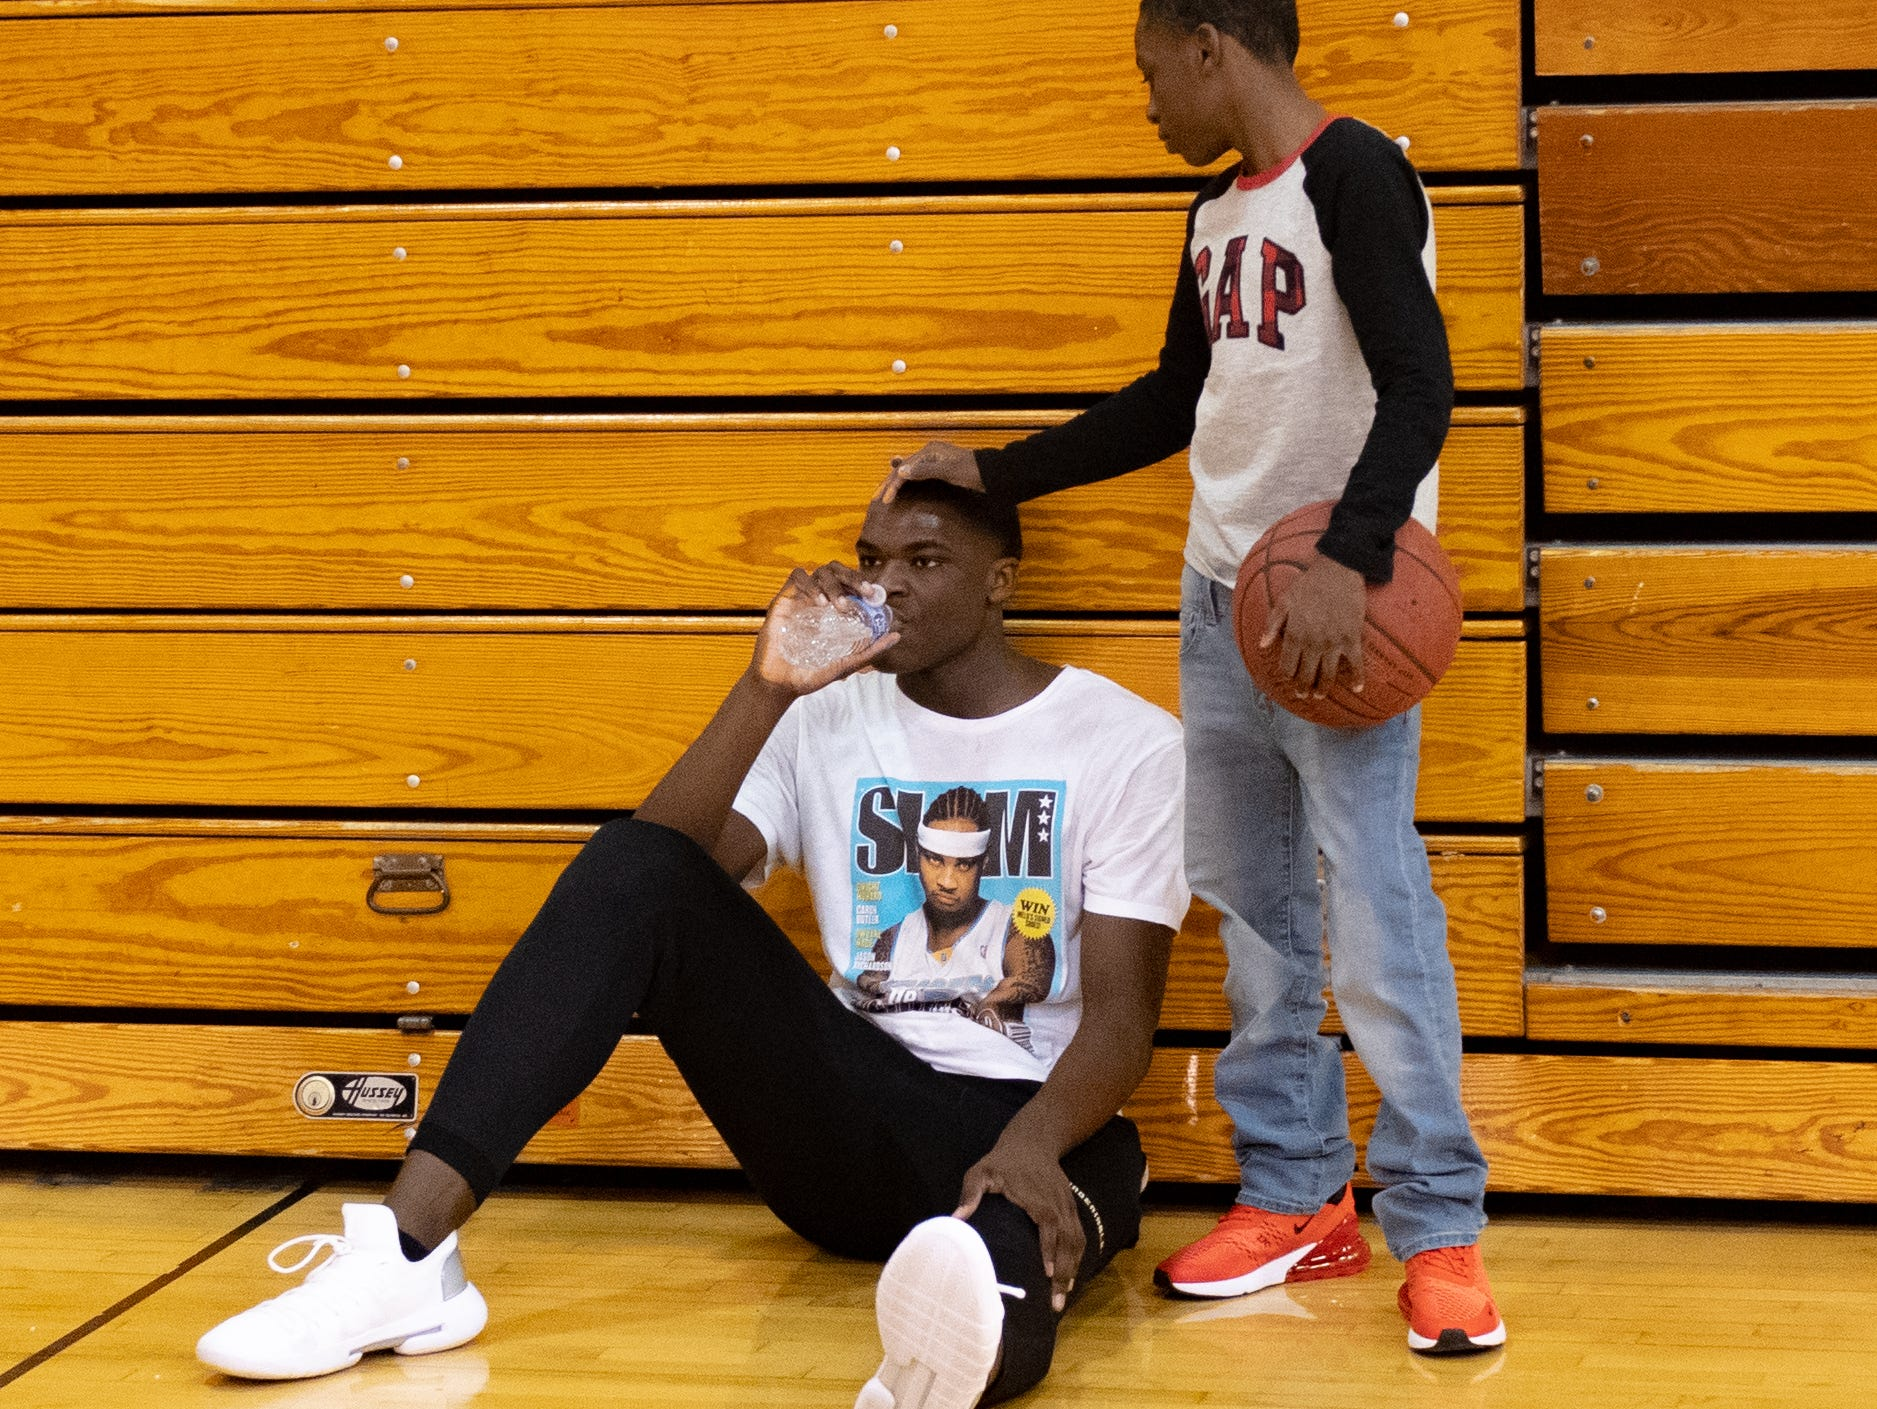 Jarace Walker (left) and Marcellus Dobbins (right) take a quick water break during the workout at Susquehannock High School, December 27, 2018.